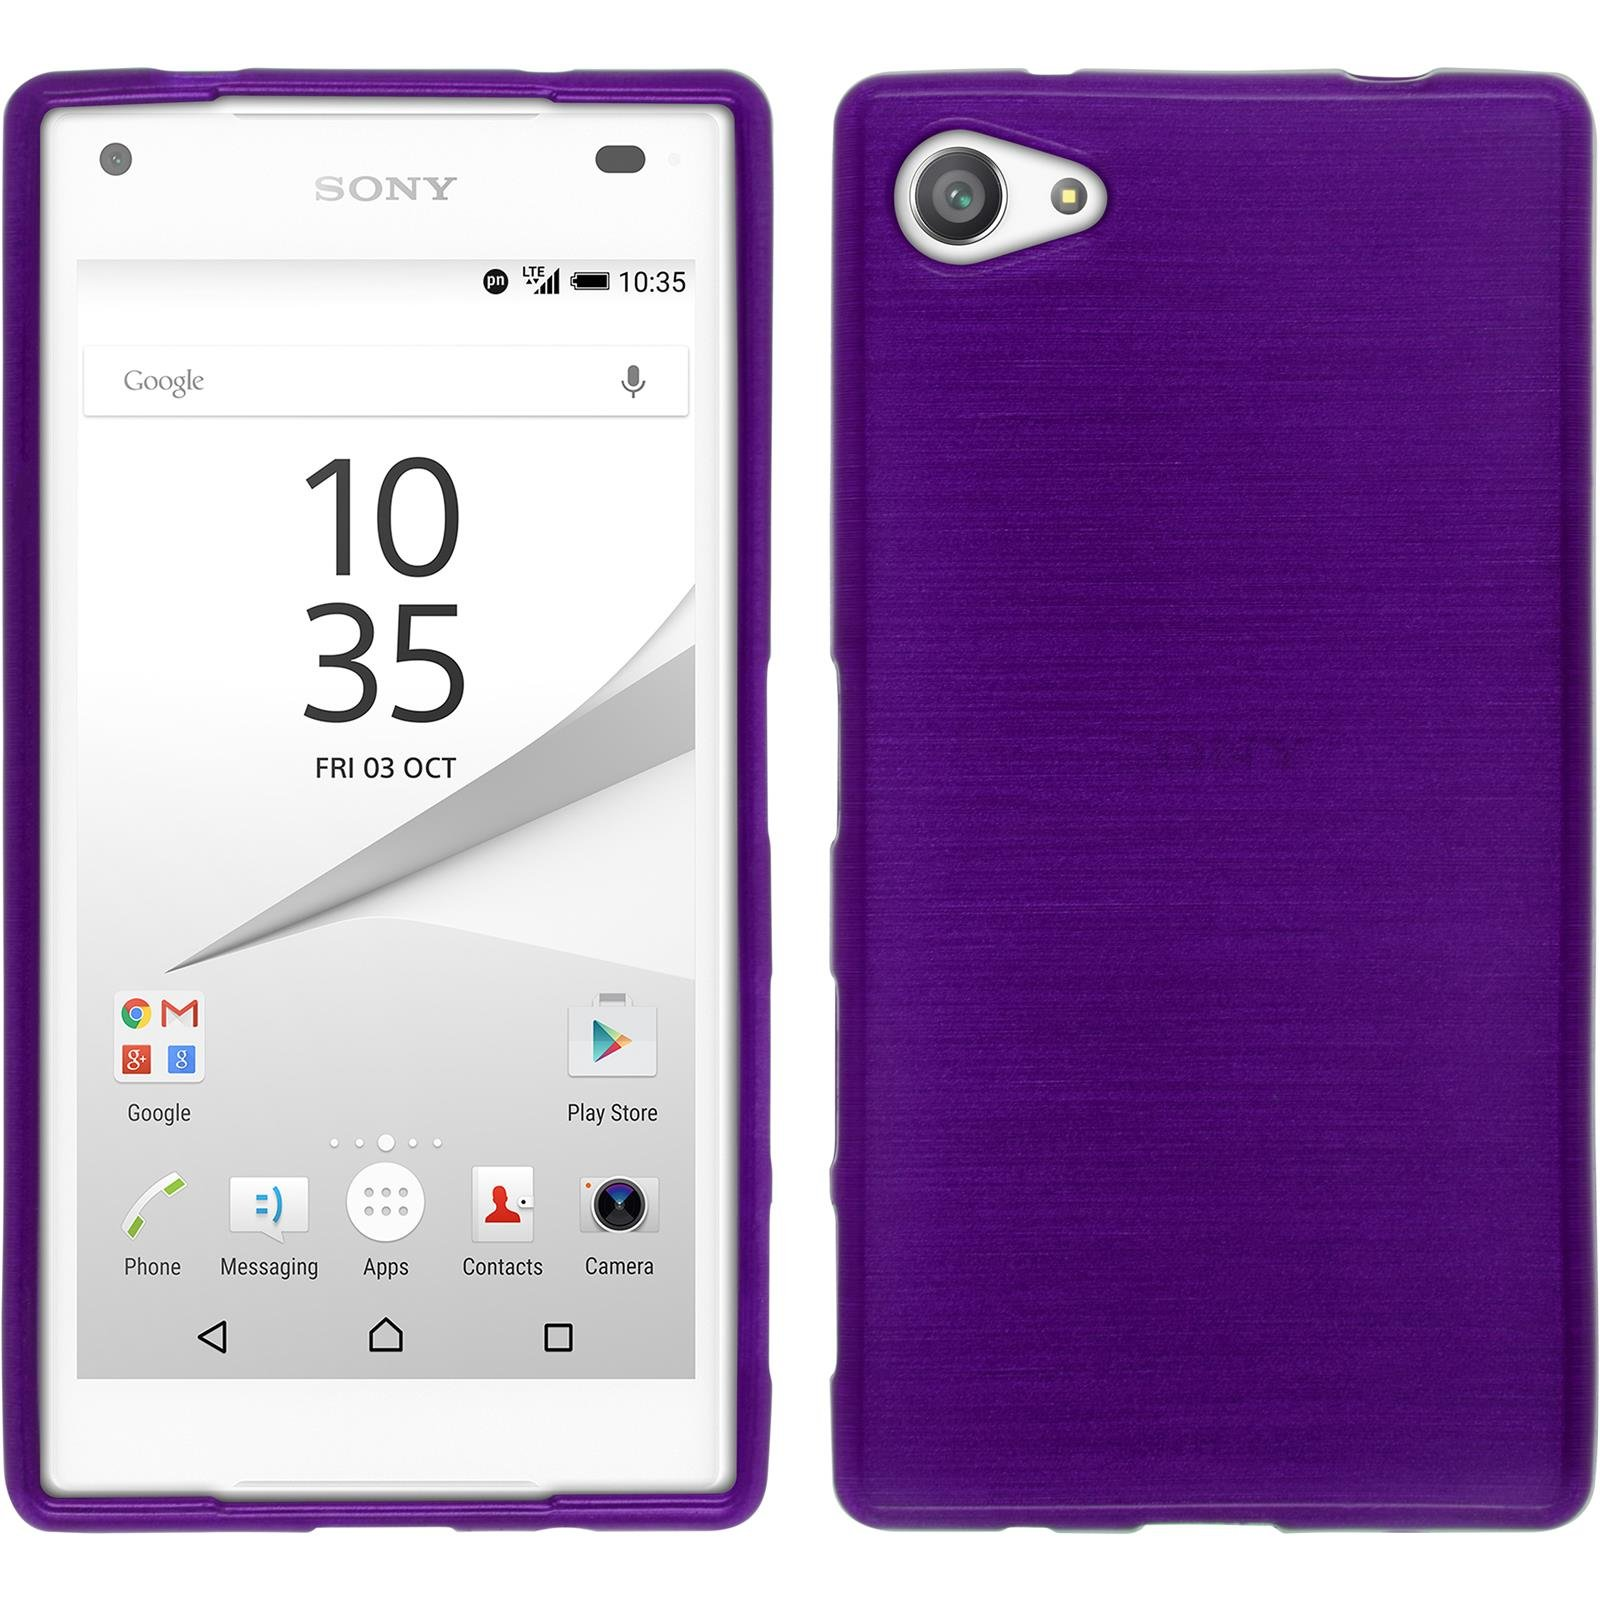 Silicone Case for Sony Xperia Z5 Compact - brushed purple - Cover PhoneNatic + protective foils